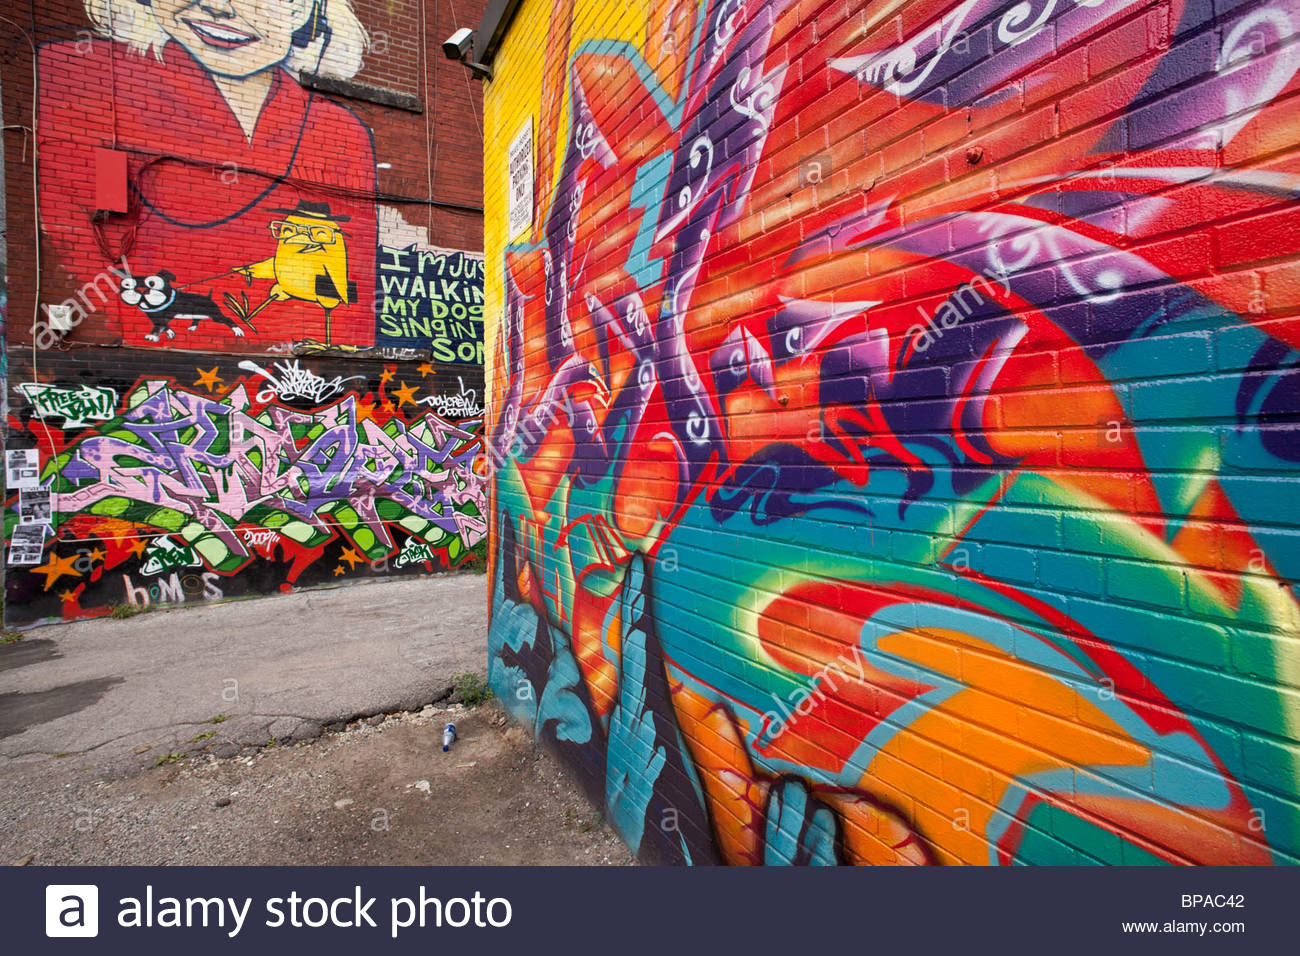 Graffiti on a wall in a back alley of the Fashion District near Queen West in Toronto Ontario Canada Stock Photo